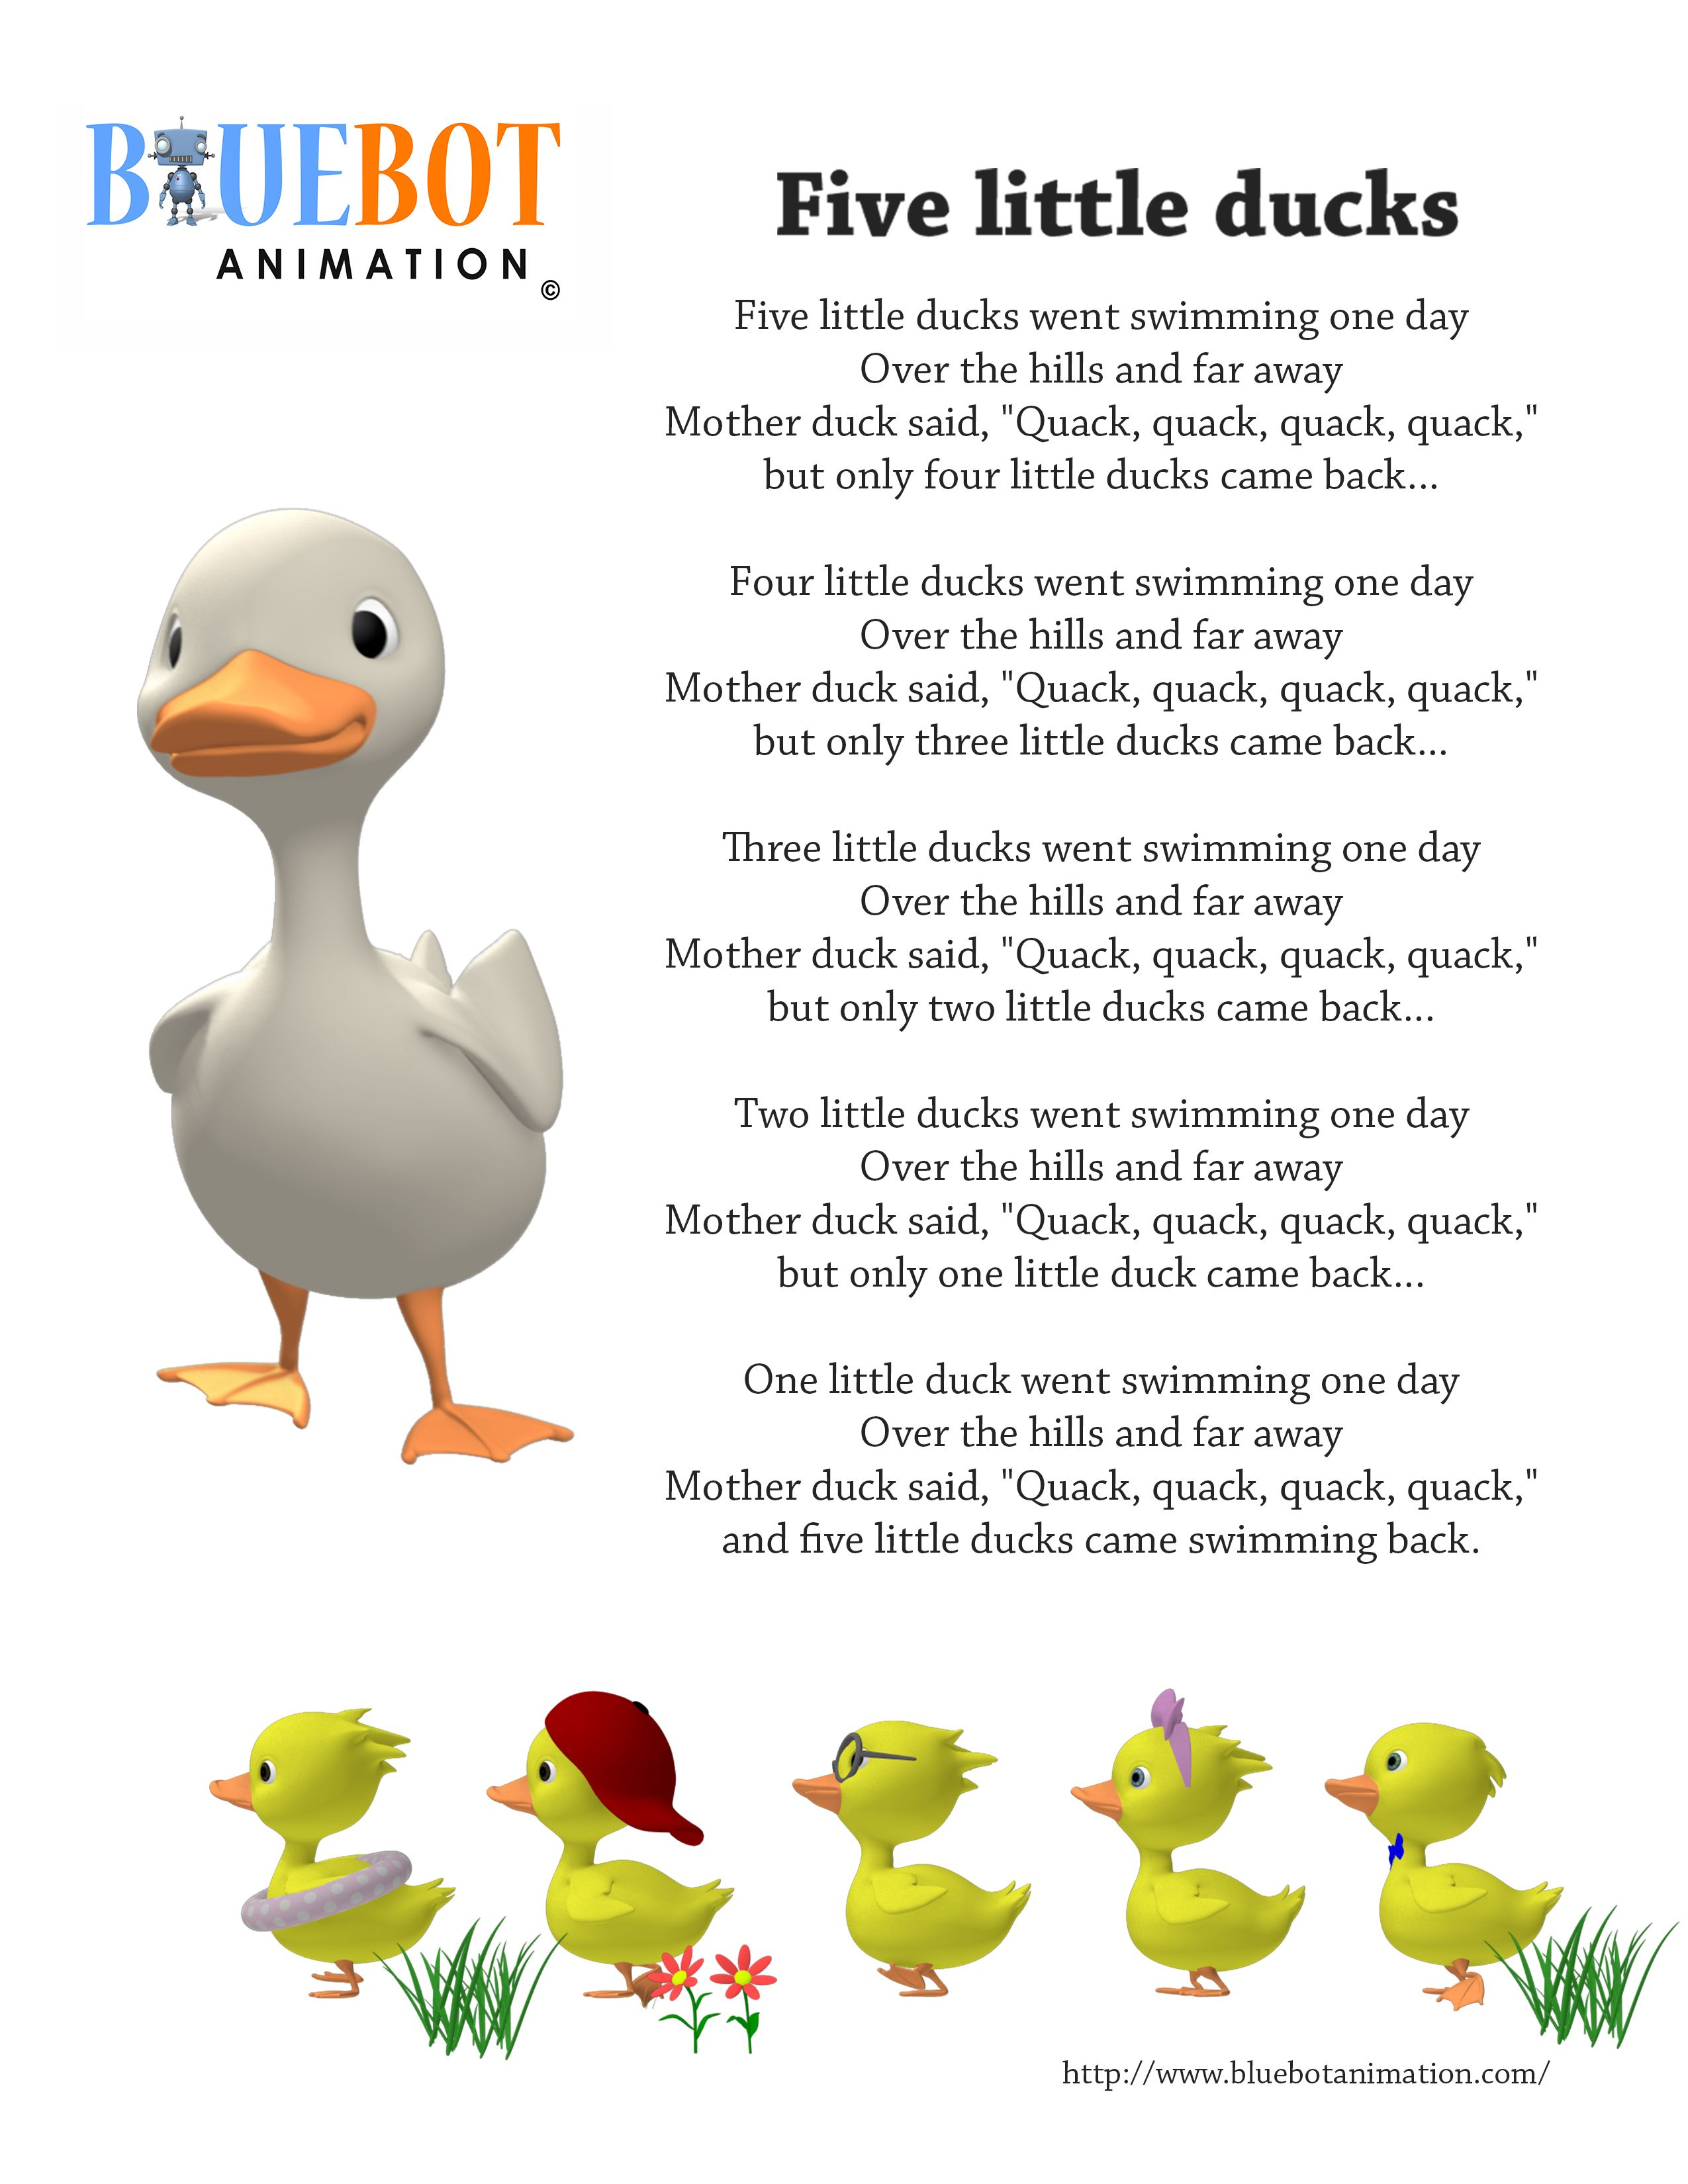 Baby Children Nursery Rhyme Song Five Little Ducks 5 Little Ducks Nursery Rhyme Lyrics